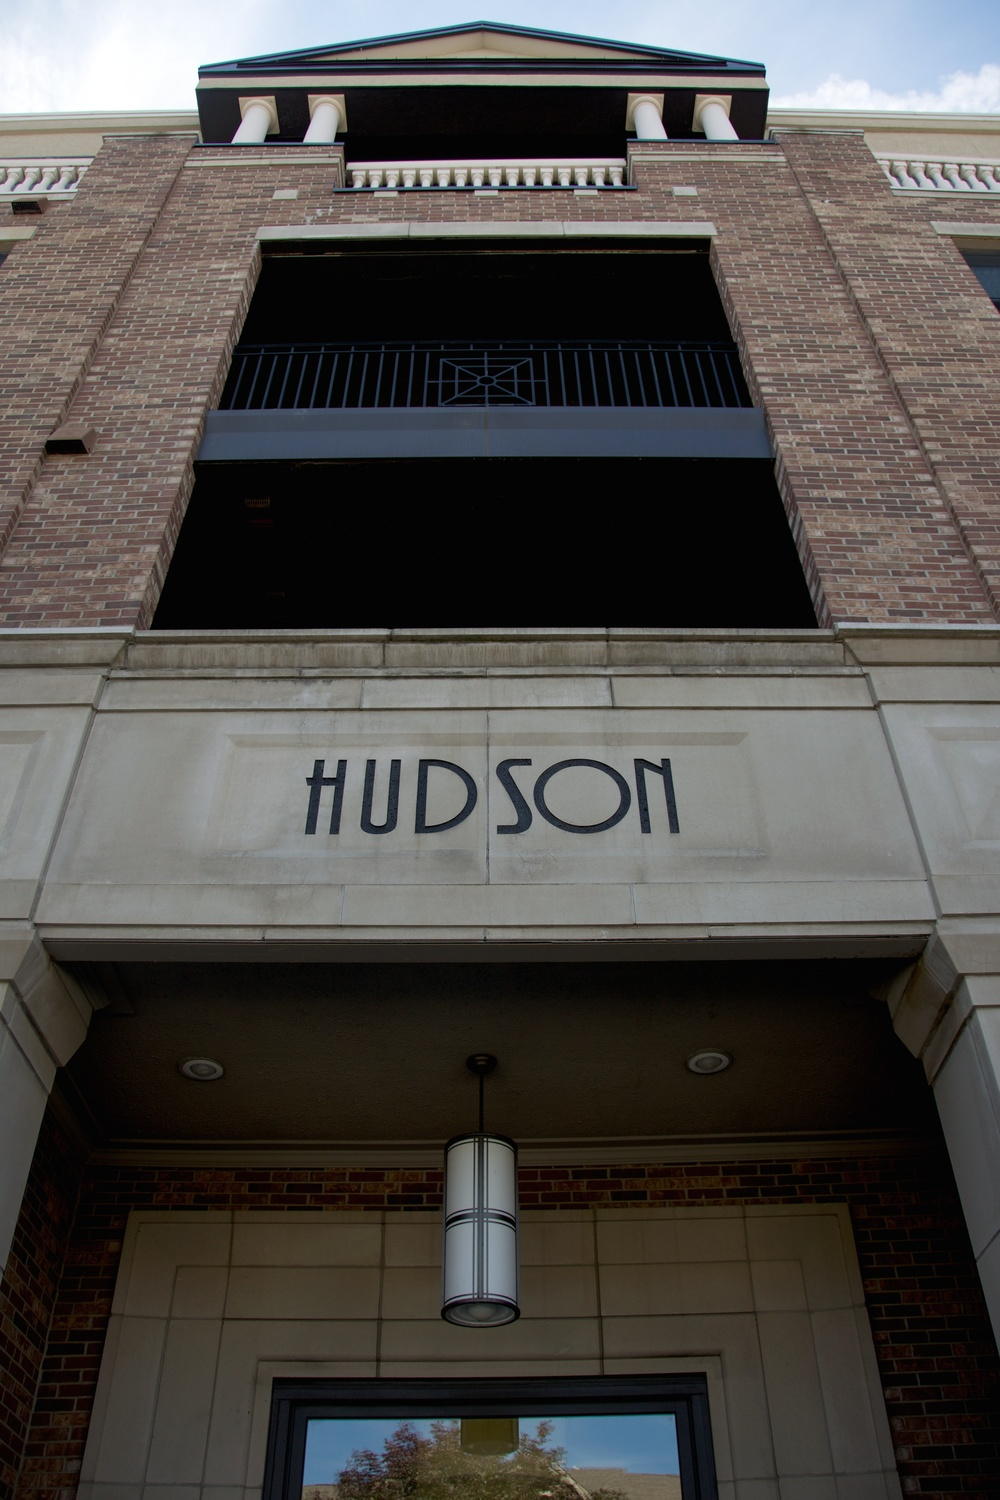 The north entrance of the Hudson Condos on Ohio Street.